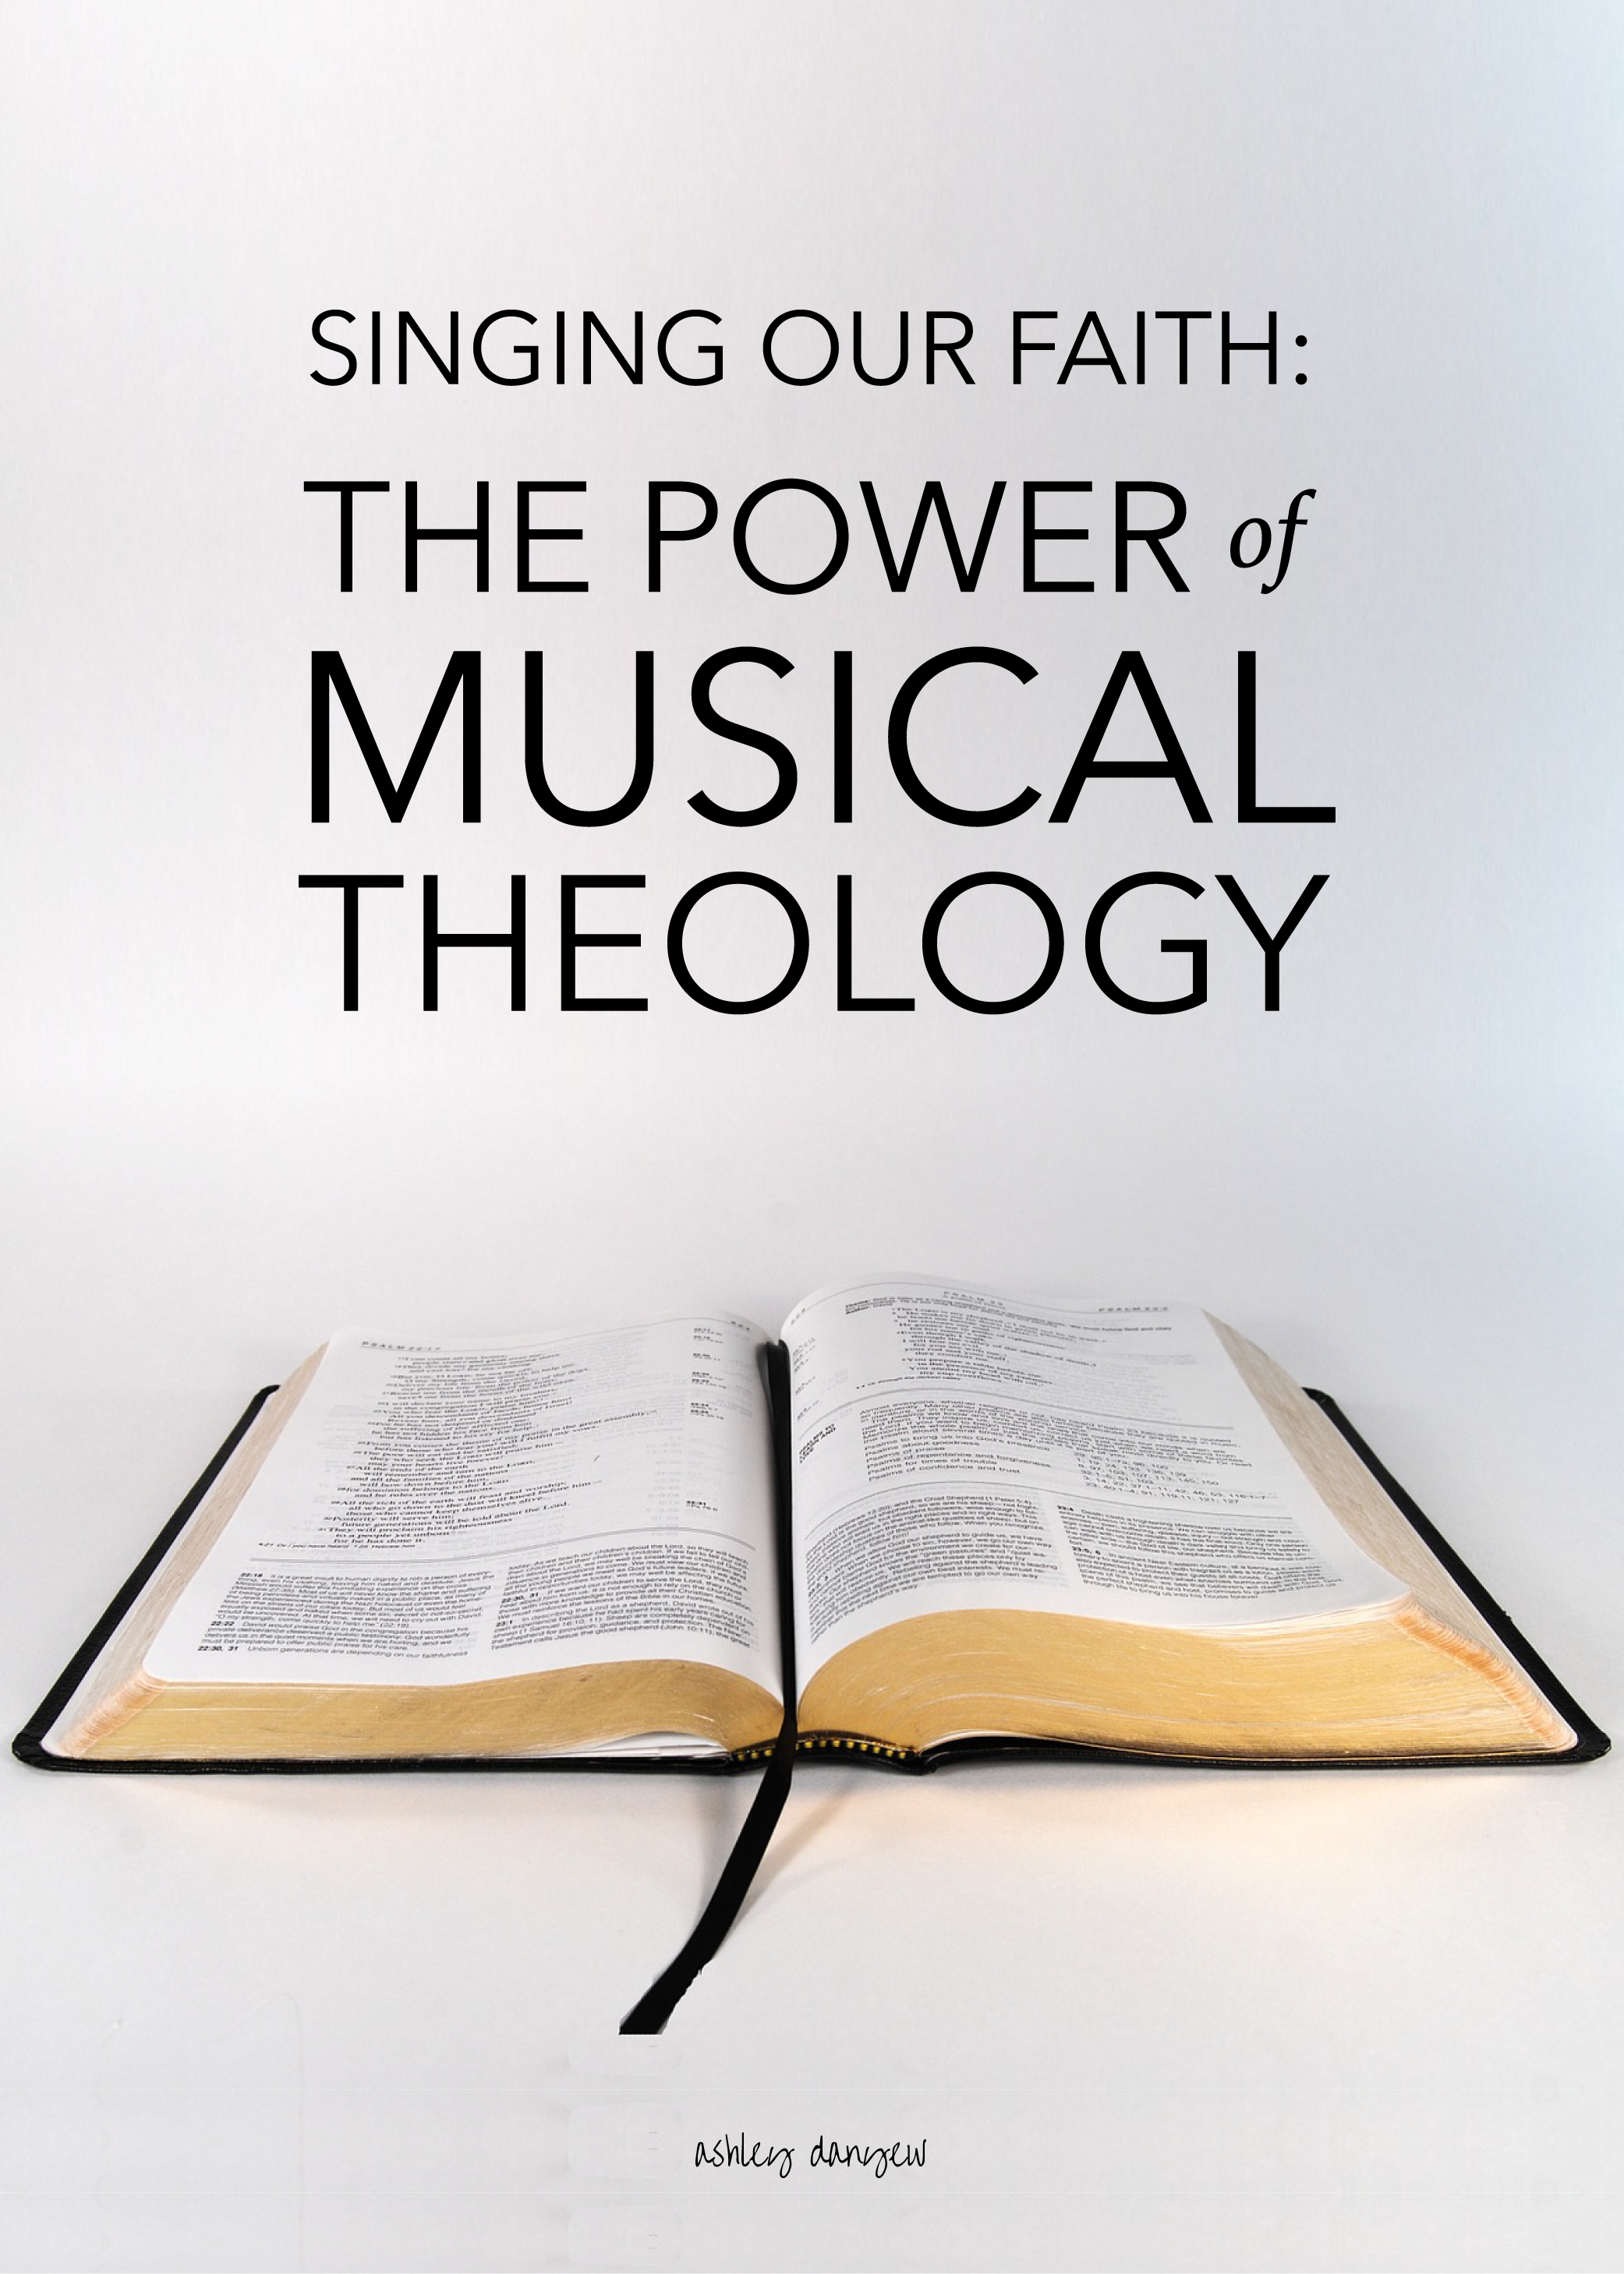 Singing Our Faith - the Power of Musical Theology-01.png